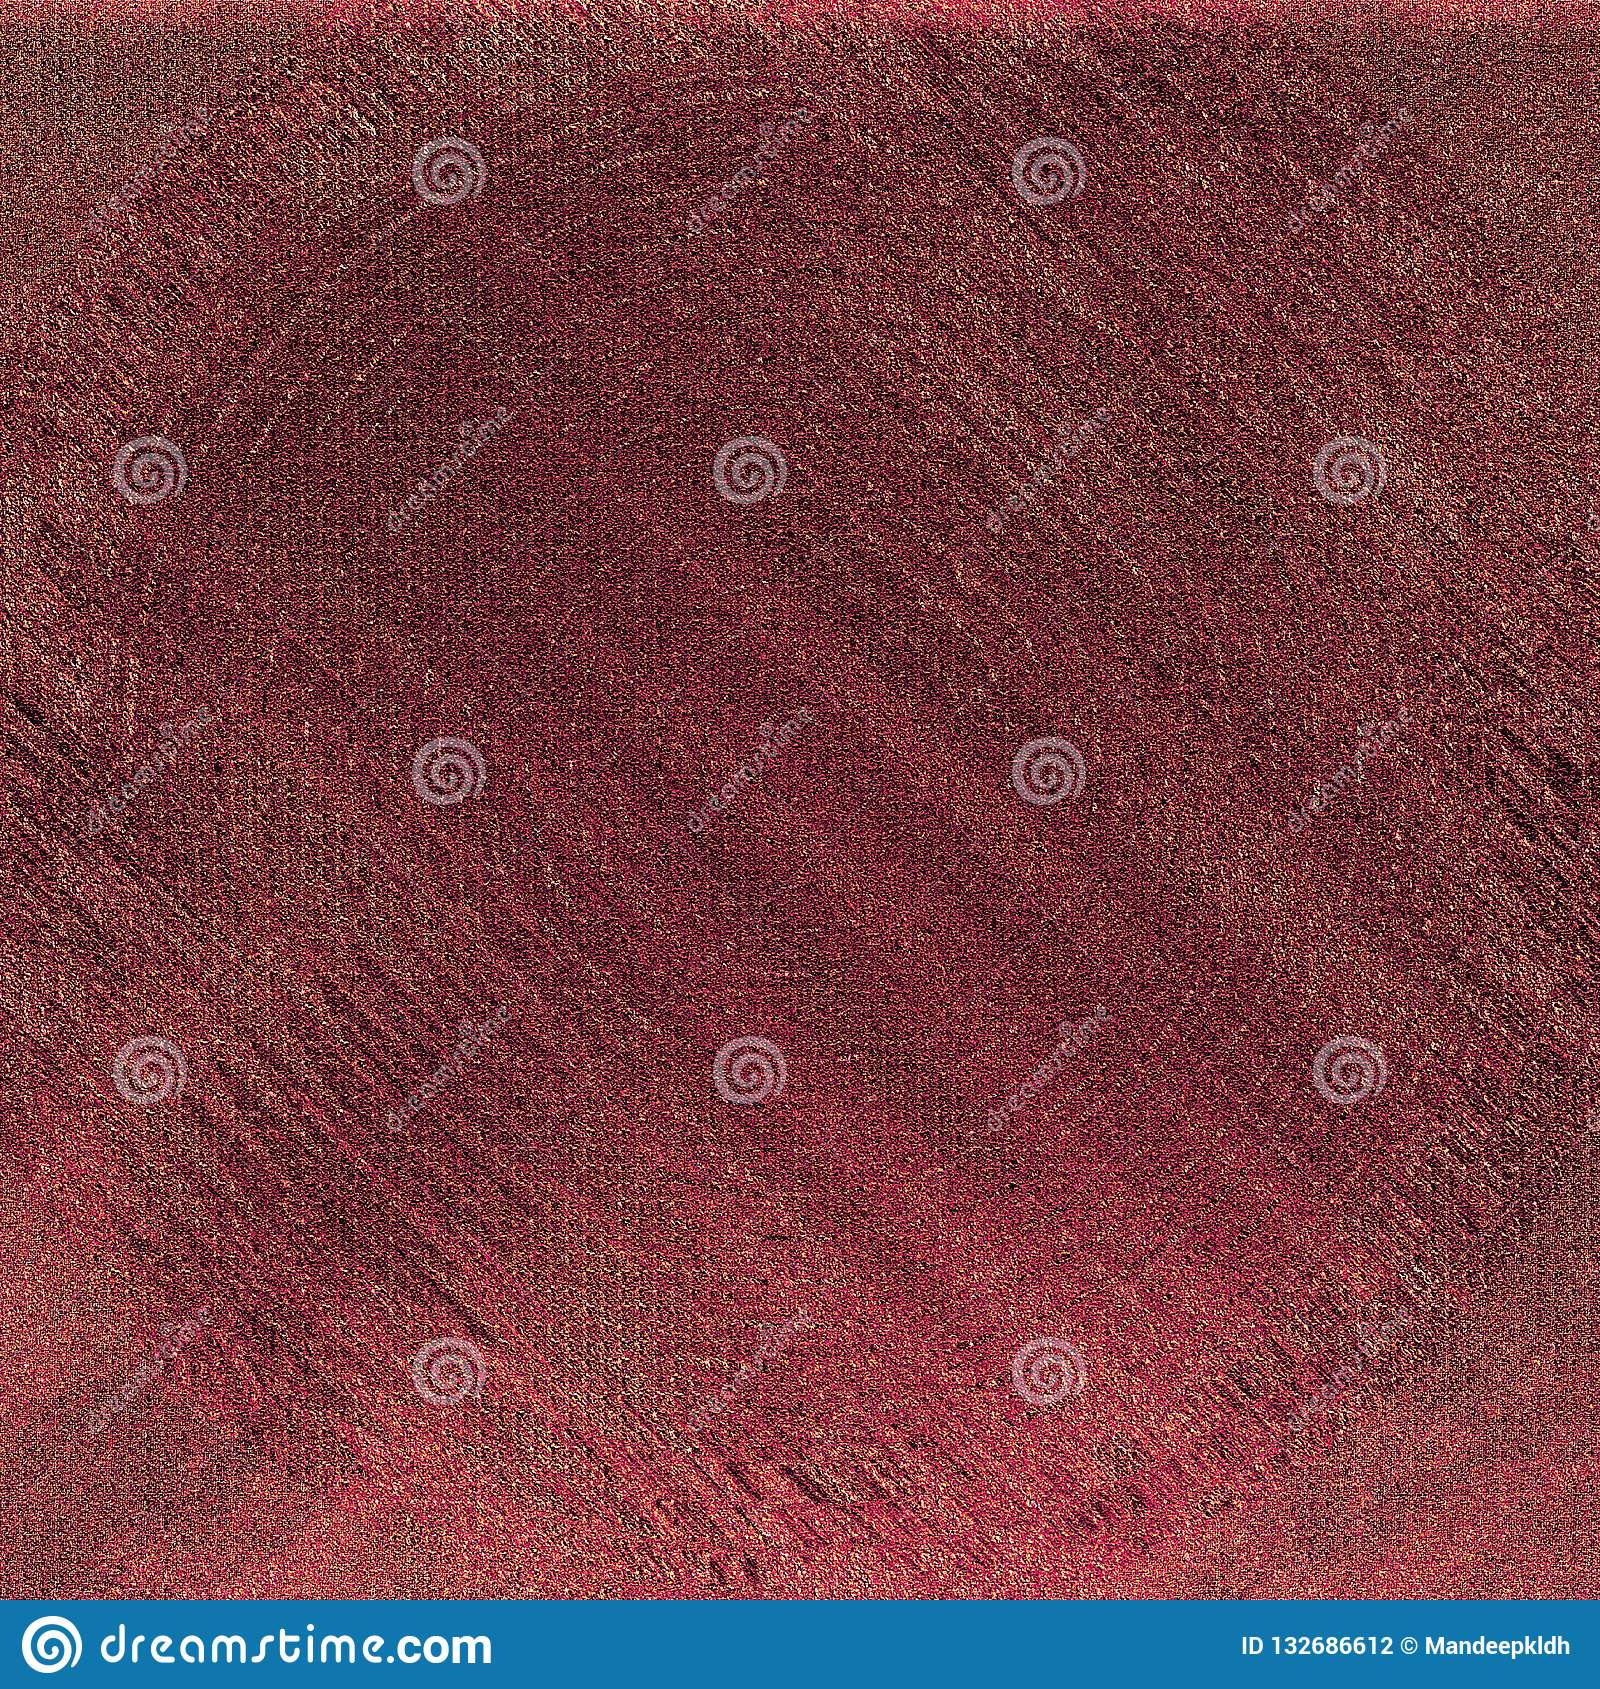 Rough textured sheet background. Grungy surface texture background.